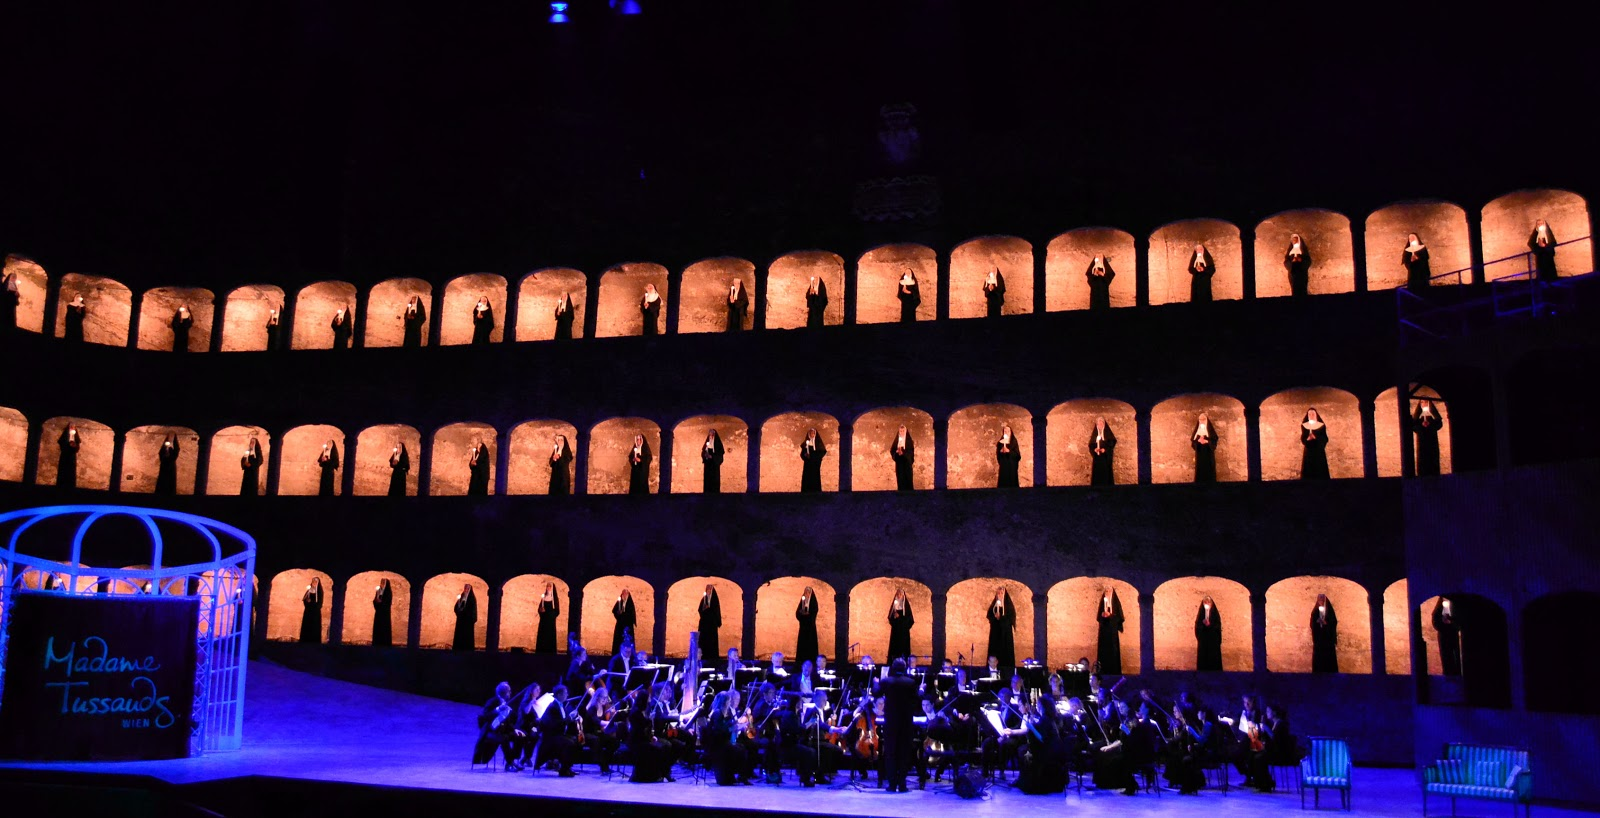 During the opening score, a candlelight procession of 50 nuns filled all three tiers of arcades.